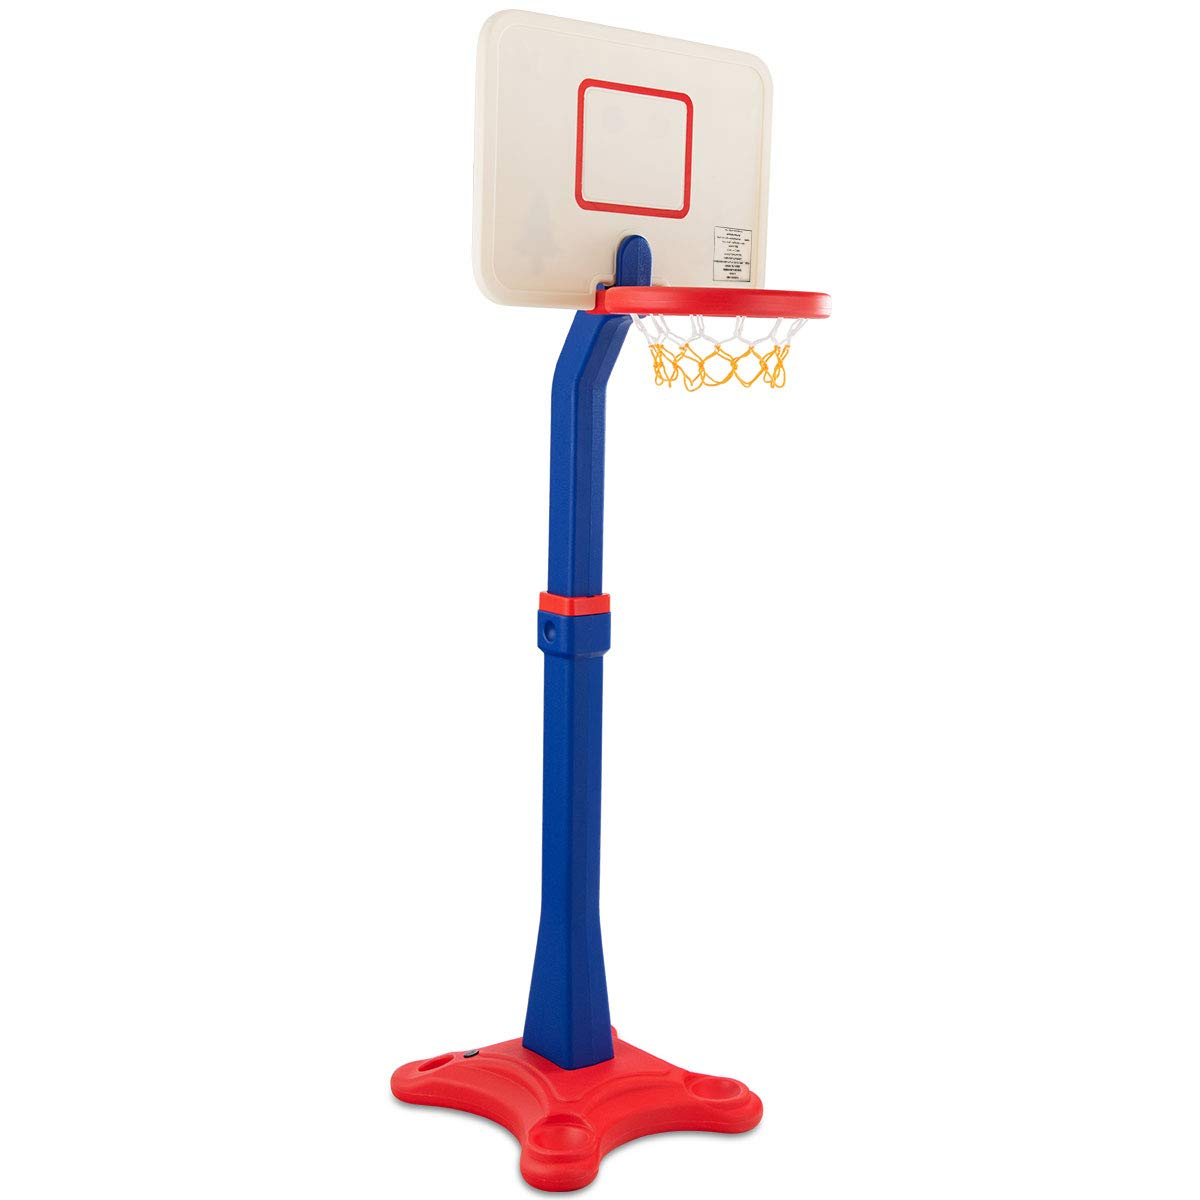 Costzon Kids Basketball Stand, Basketball Hoop Adjustable Height, Kids Play Toy, Portable Design Indoor Outdoor (Height Adjusts from 5.5 to 7 feet)